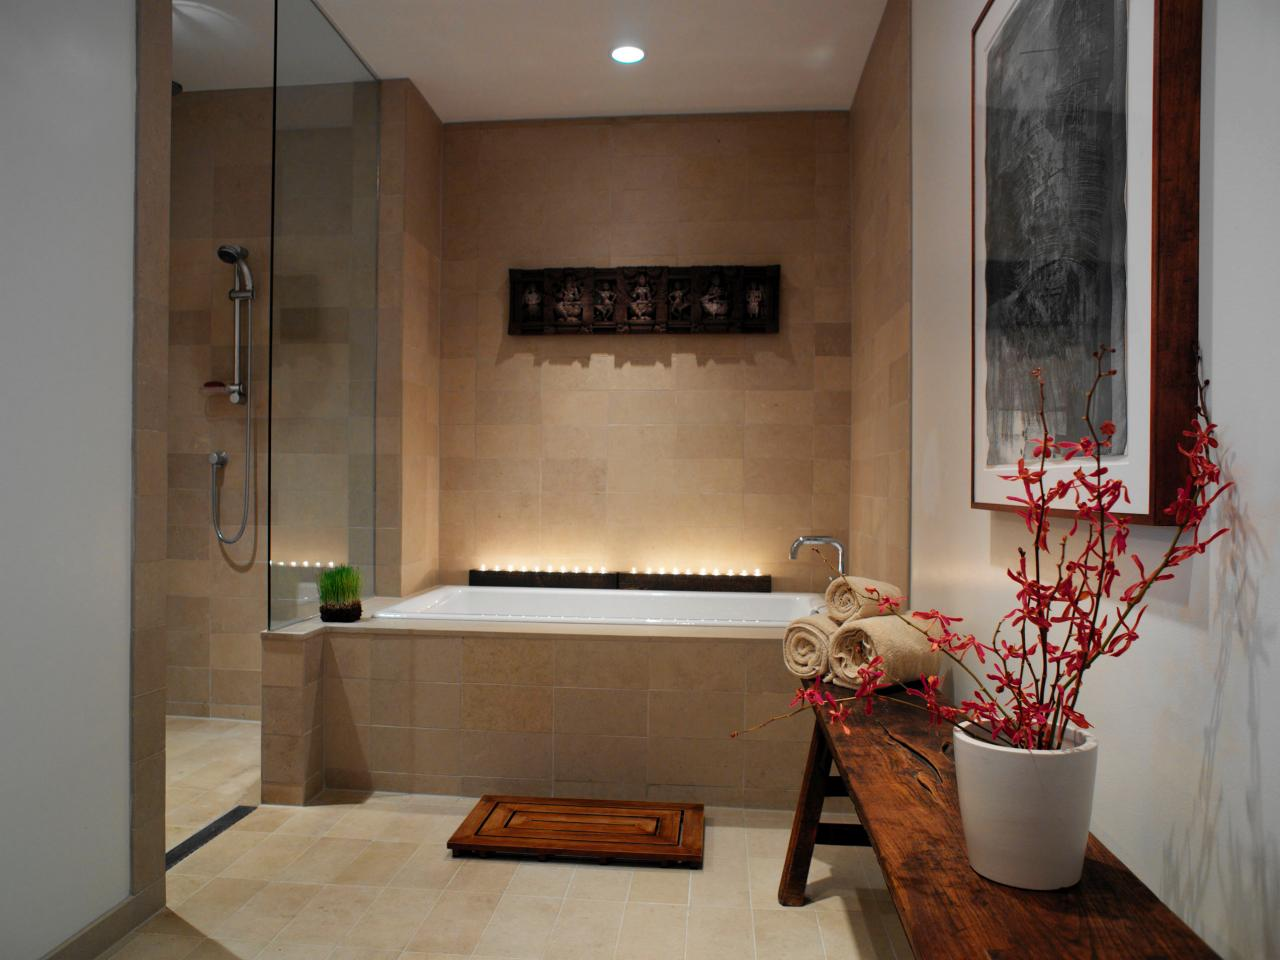 Bathroom design ideas spa : Spa inspired master bathrooms bathroom design choose